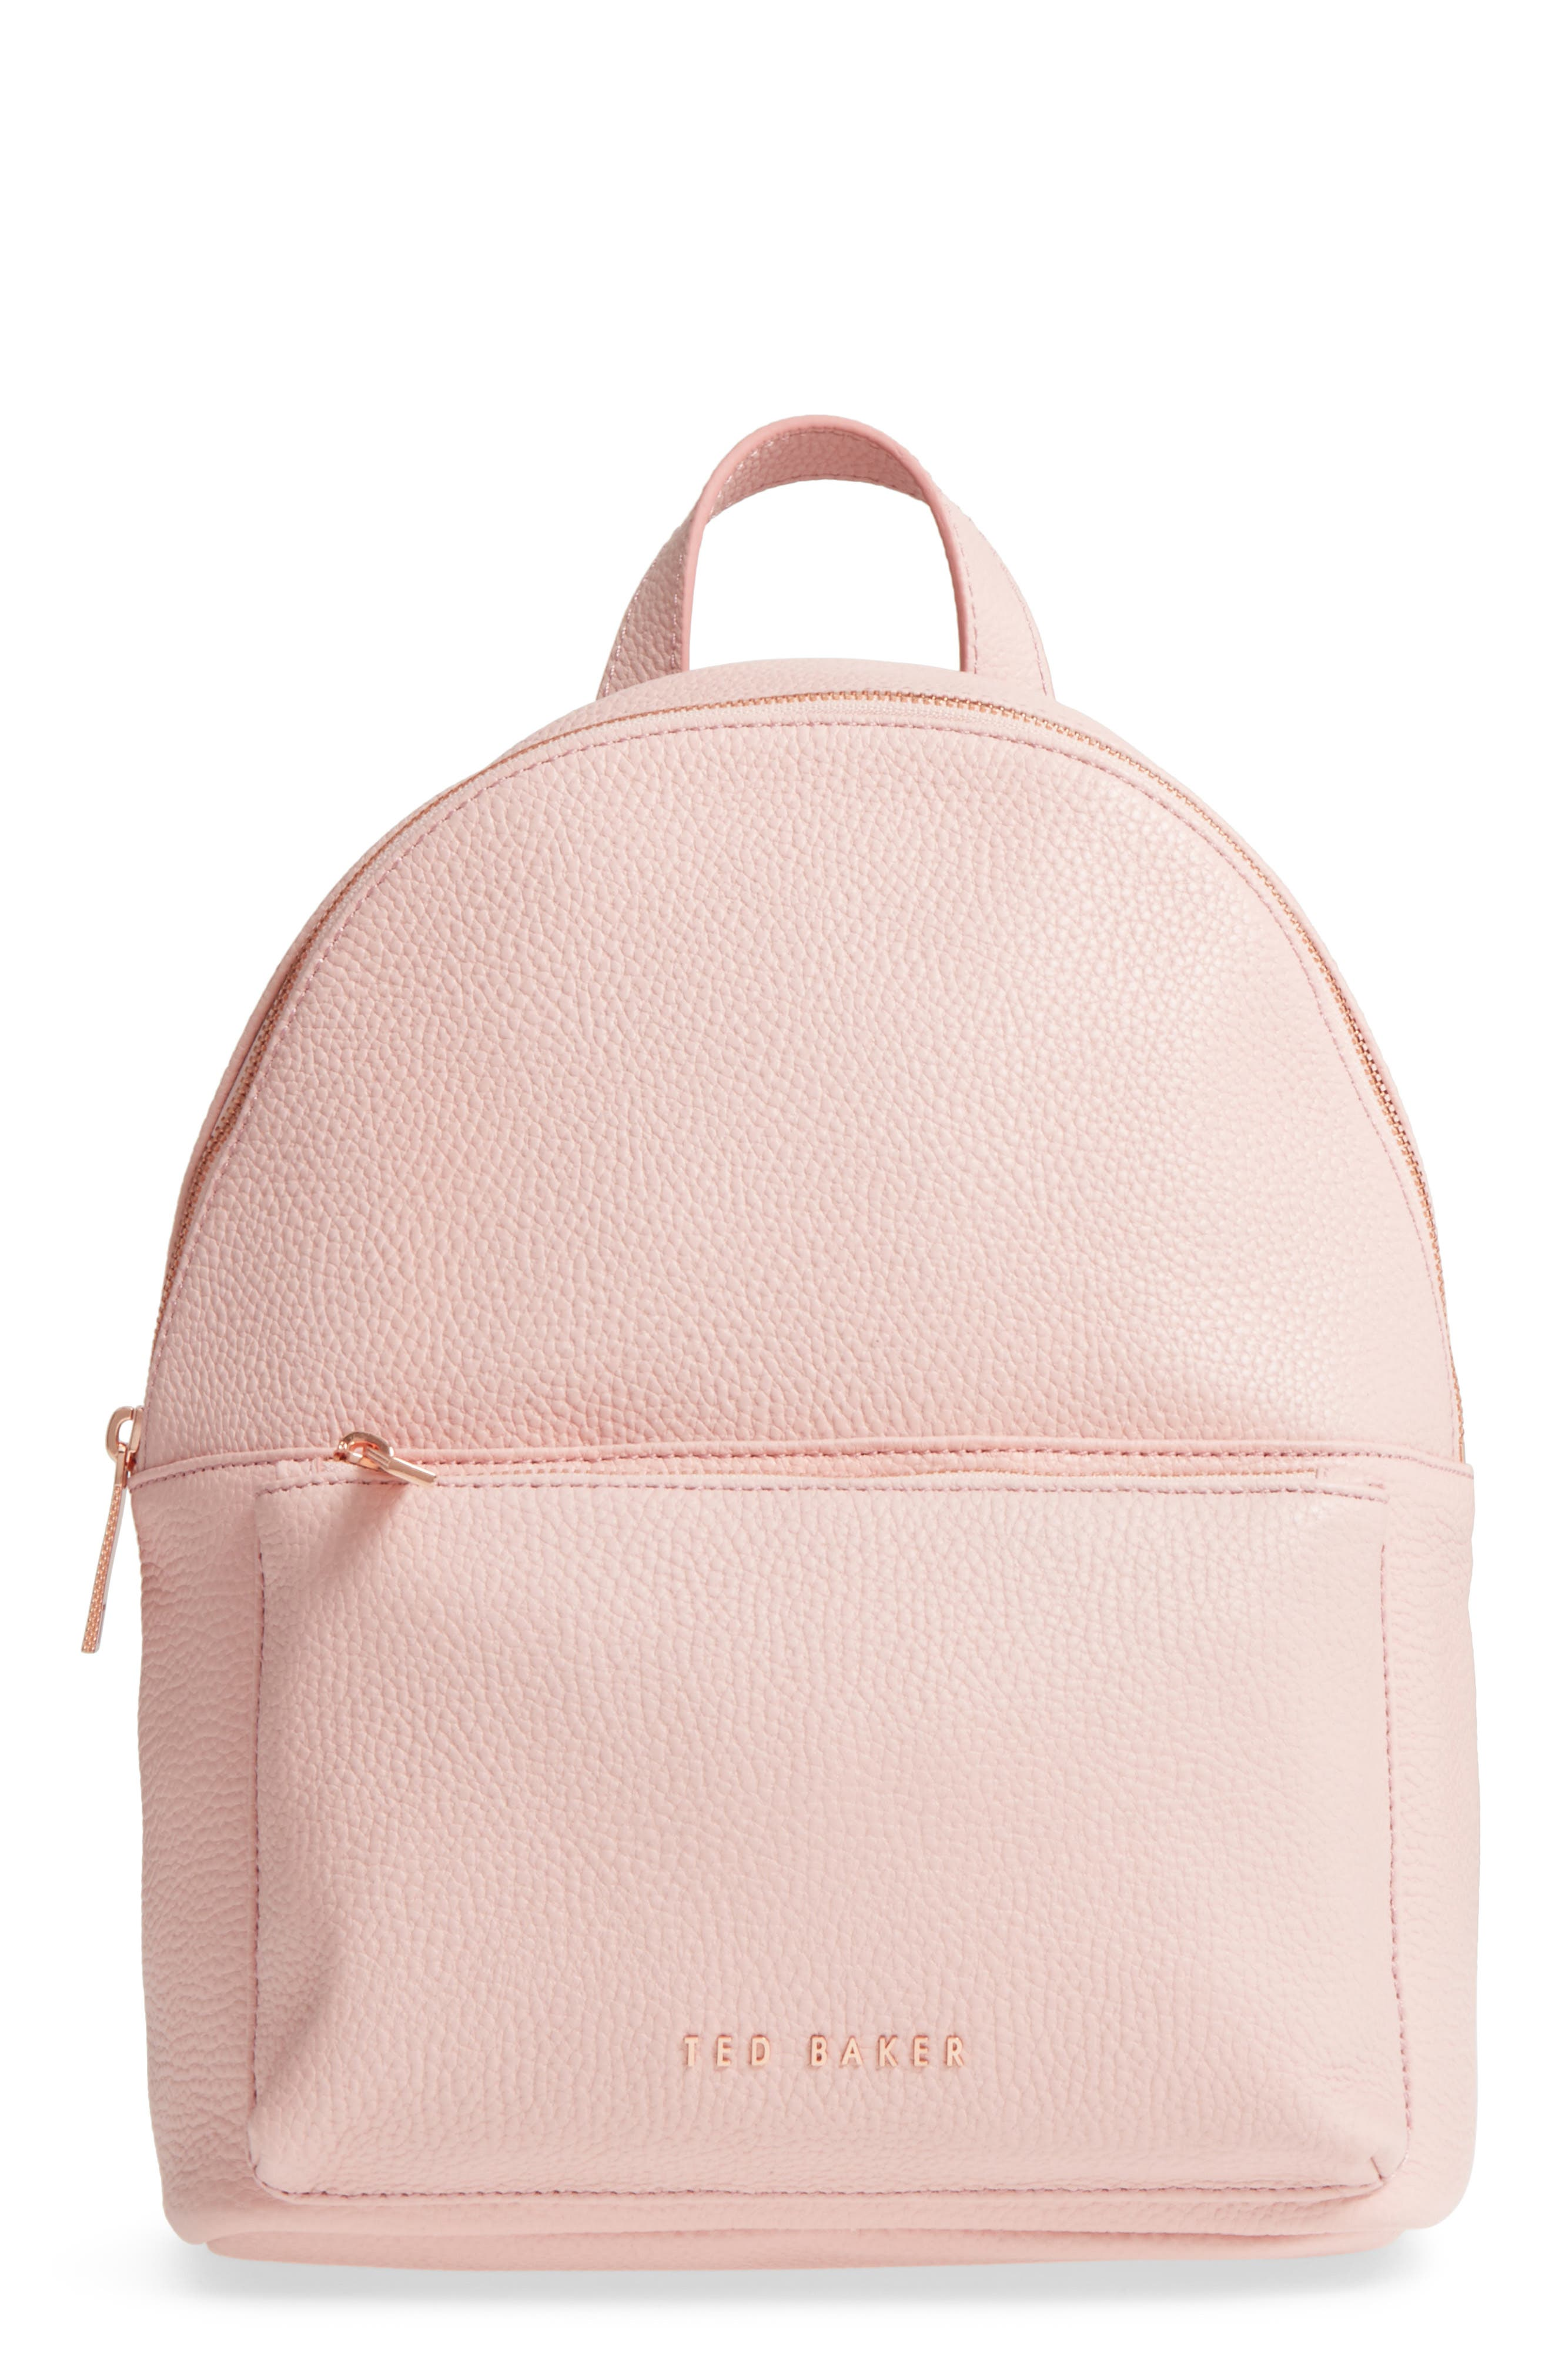 Pearen Leather Backpack,                             Main thumbnail 4, color,